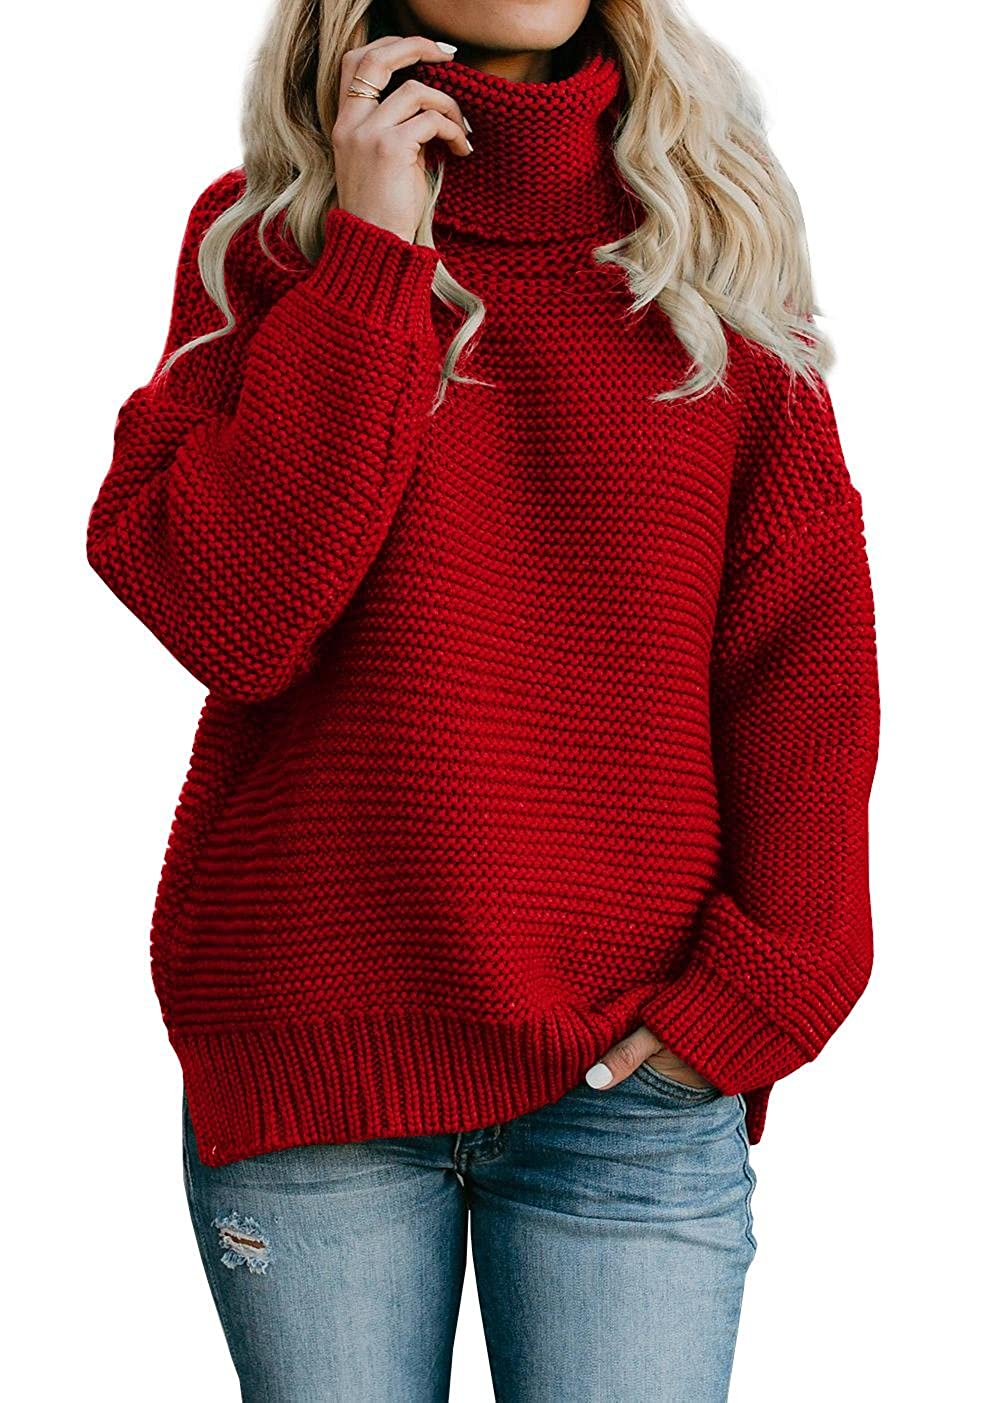 EastLife Womens Oversized Sweaters Turtleneck Casual Long Sleeve Cable Knit  Pullover Sweater at Amazon Women s Clothing store  3d0f9b95d